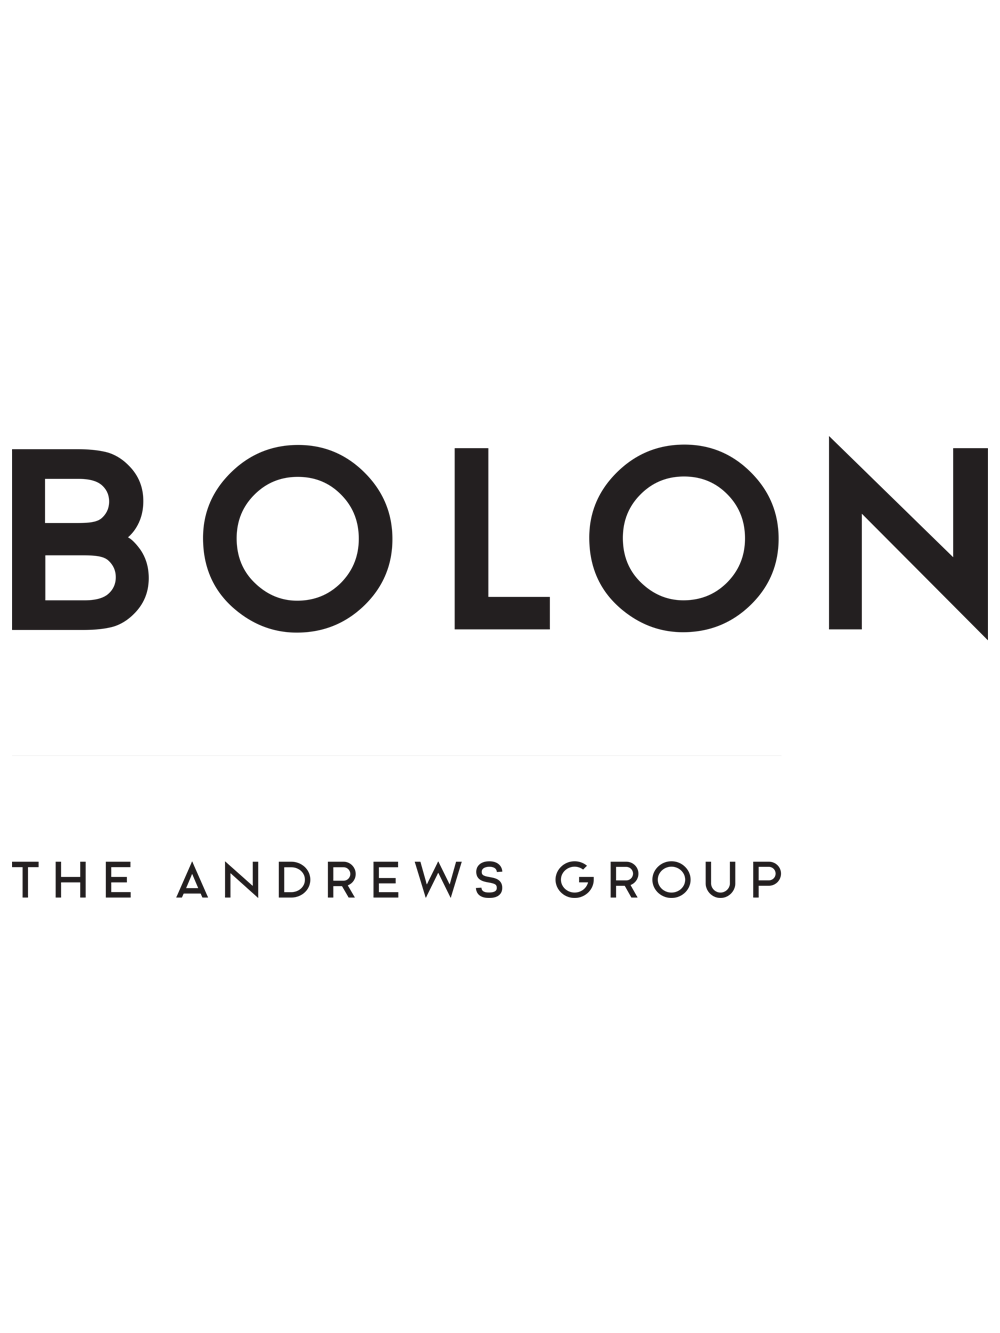 bolon-the-andrews-group_1000x1333.png